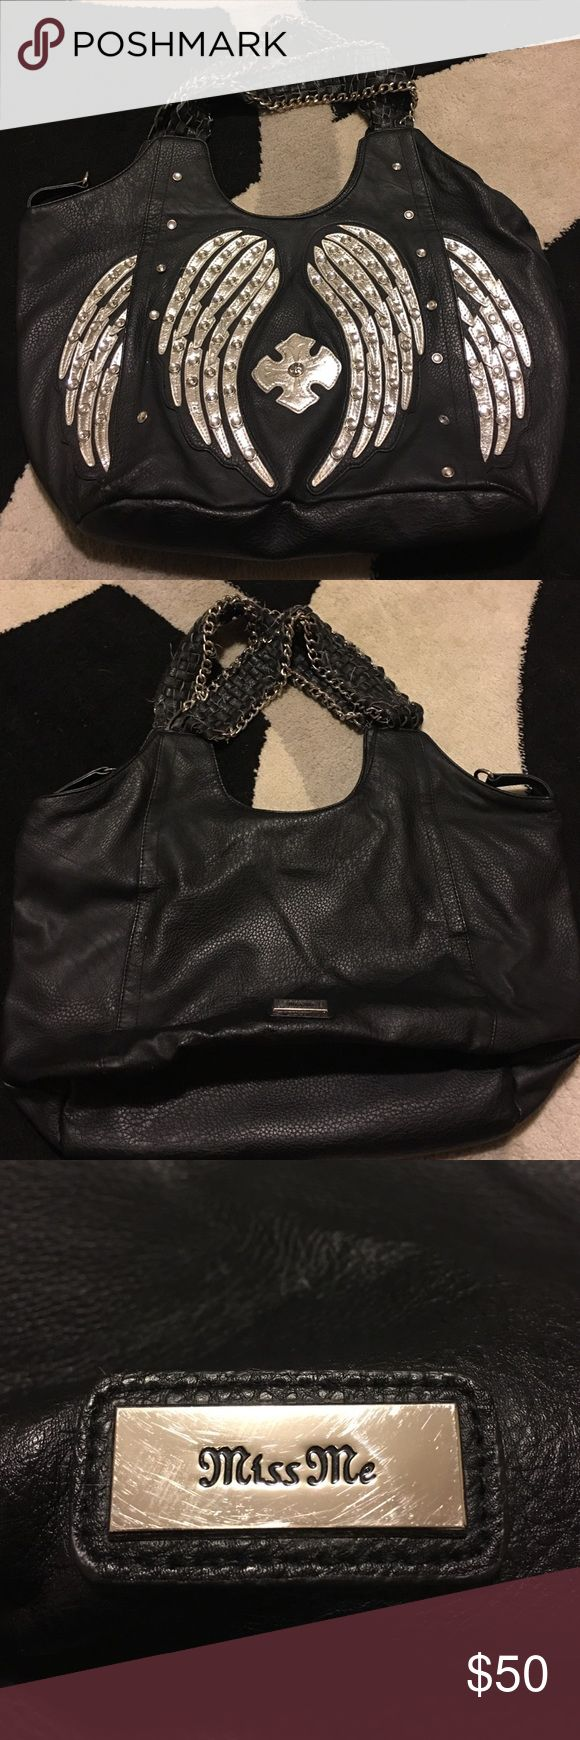 Purse MISS ME Brand 100% Leather bag. Purchased from Buckle. Silver angel wing detail on front accented with round, clear rhinestones. This bag has been well-loved and shows slight wear on the outer corners. Inside is fairly clean. Handles are woven leather straps trimmed in silver chains. Miss Me Bags Hobos